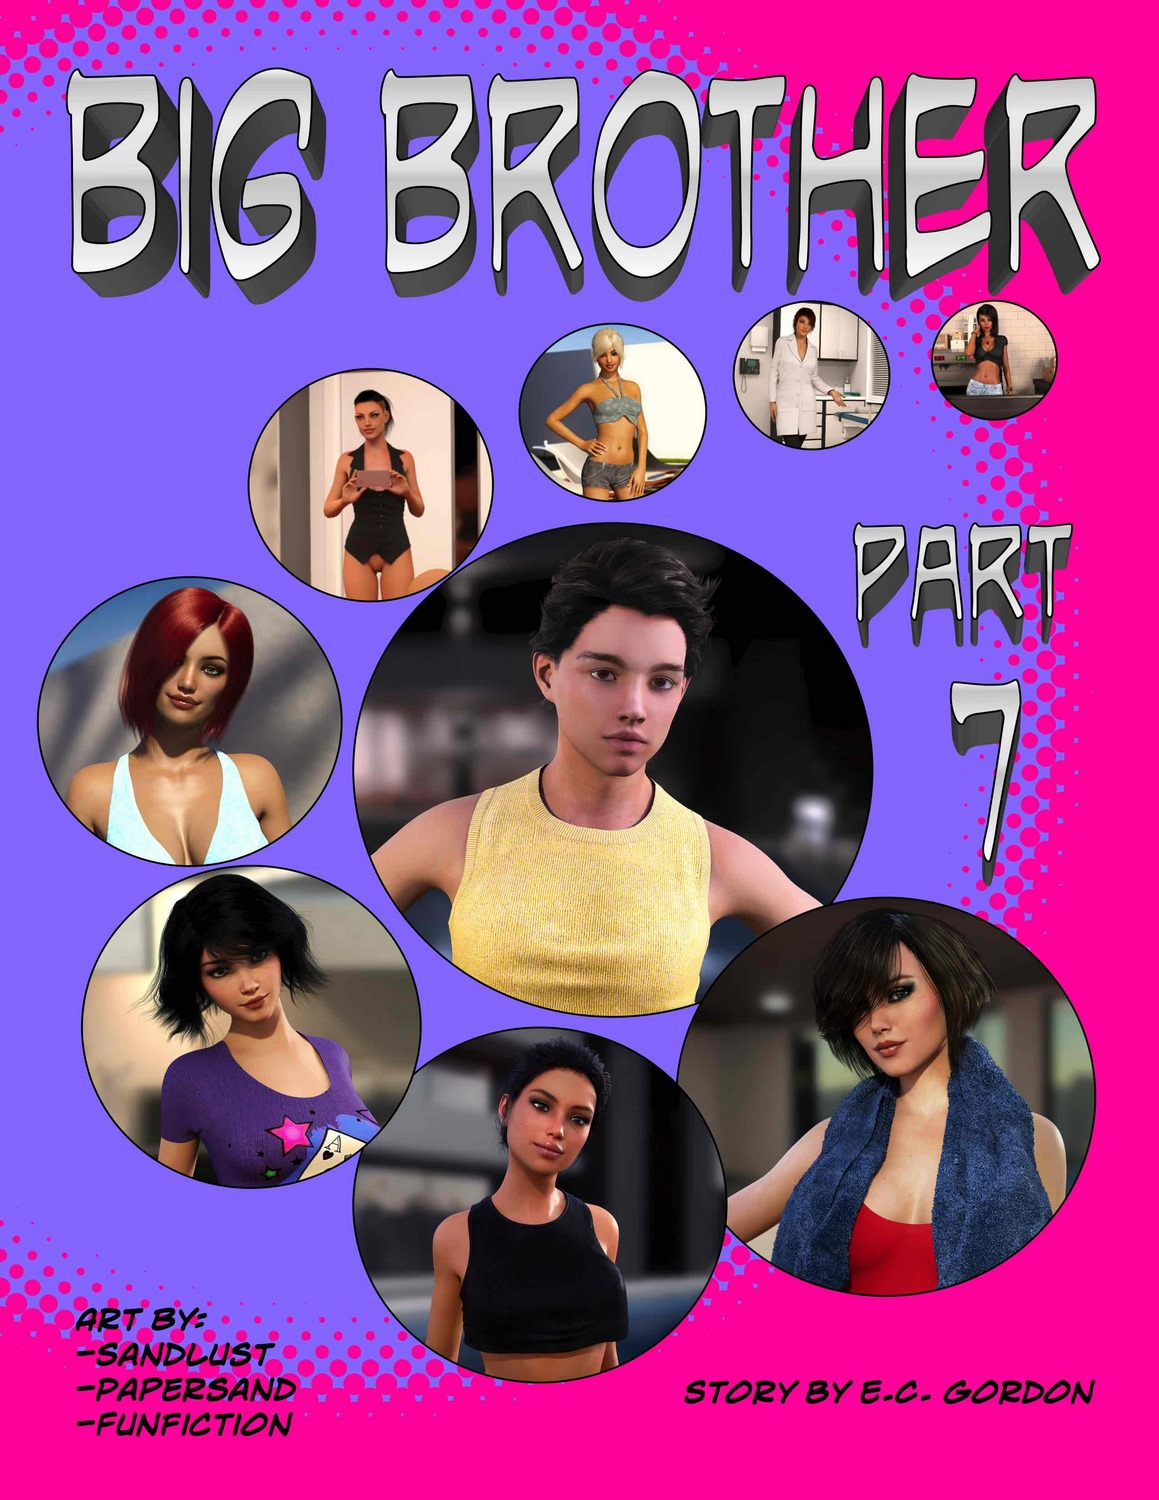 Big Brother Part 7 by Sandlust